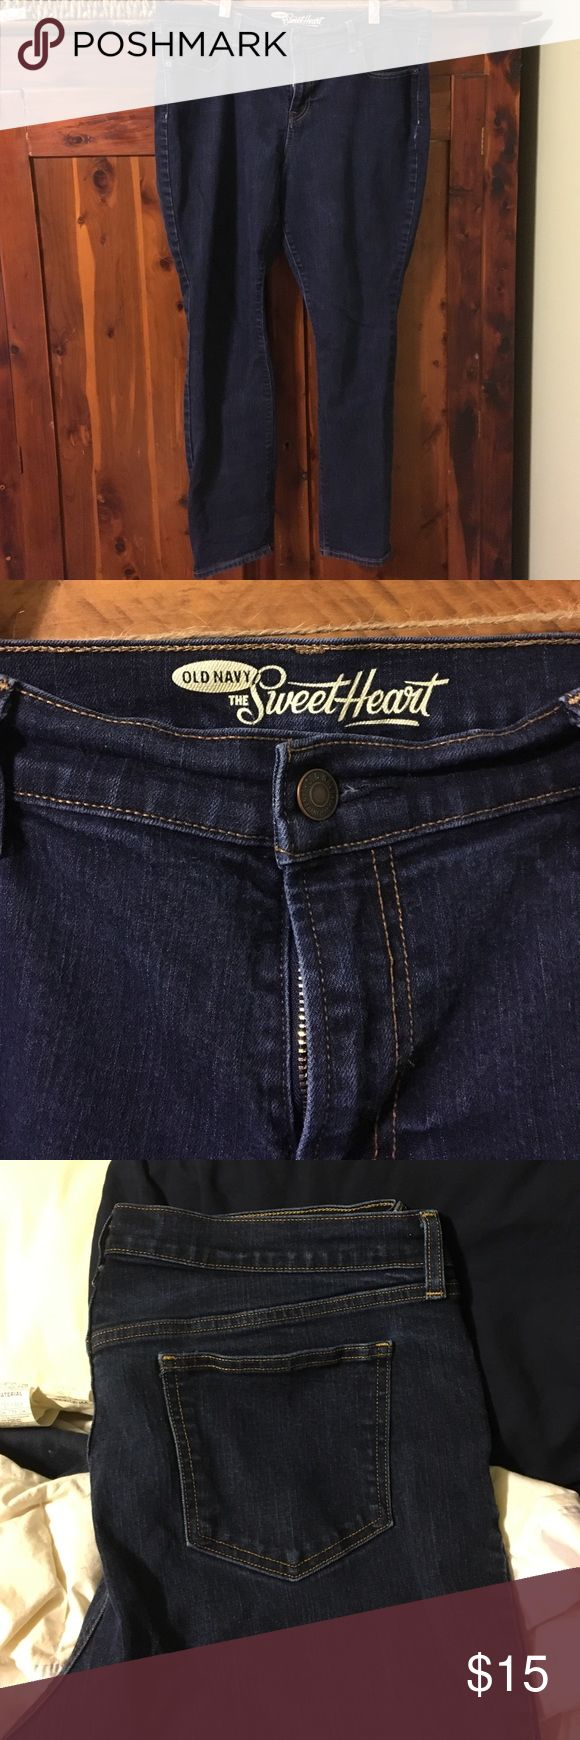 """Old navy jeans """"The sweetheart"""" jeans. Size 16 shirt/petite. Very cute and comfortable, just too big for me. Excellent used condition! Old Navy Jeans"""